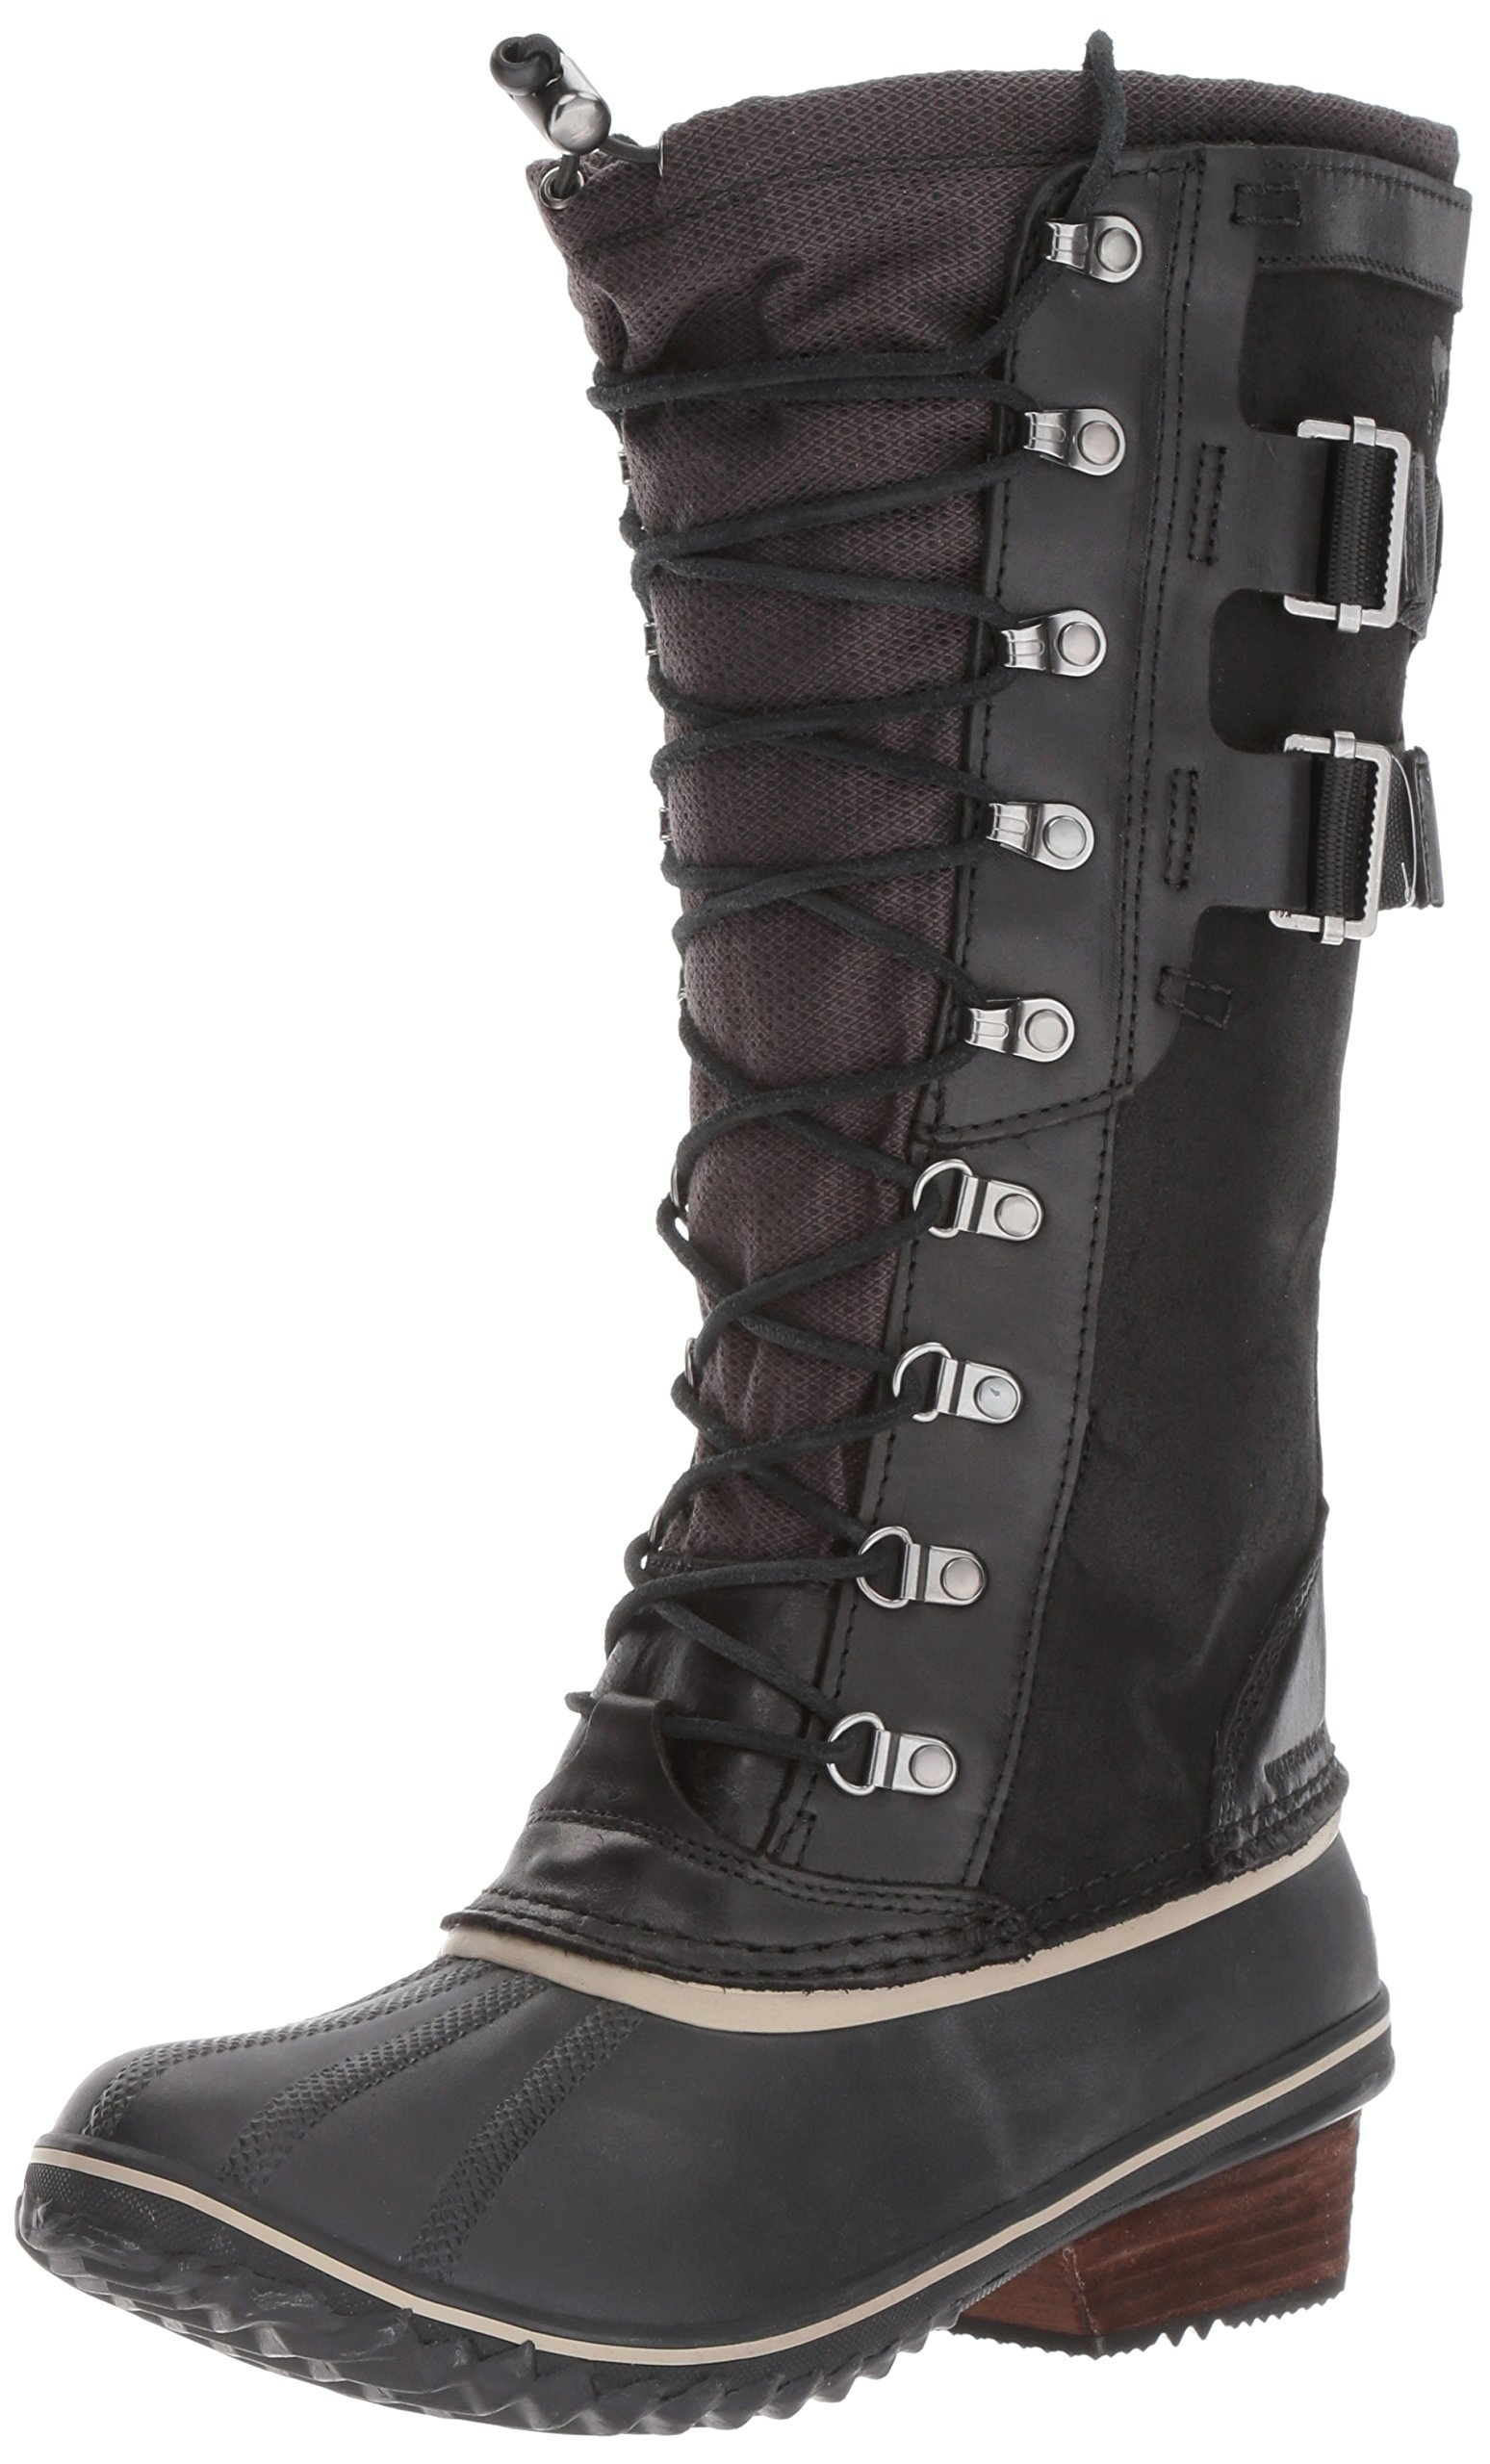 Sorel Women's Conquest Carly II Snow Boot, Black, Silver Sage, 8 B US